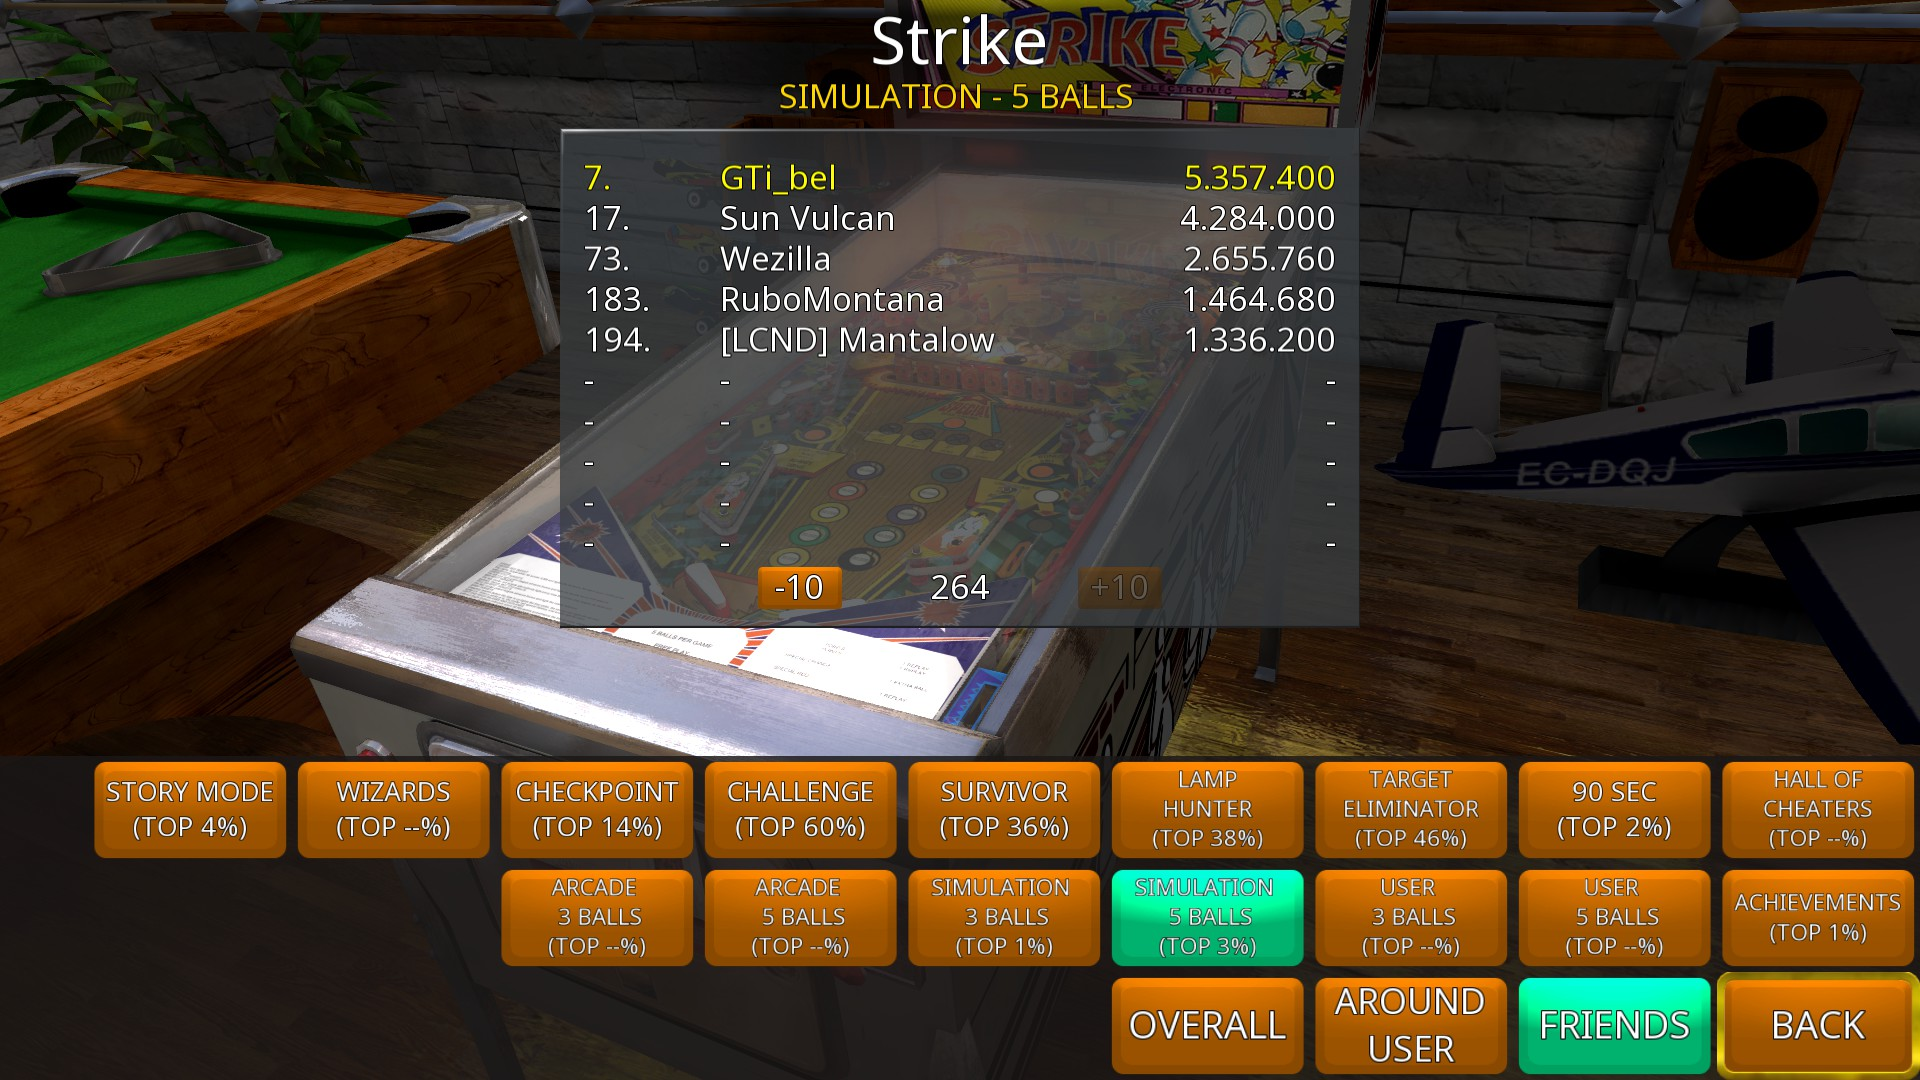 Zaccaria Pinball: Strike [5 balls] 5,357,400 points